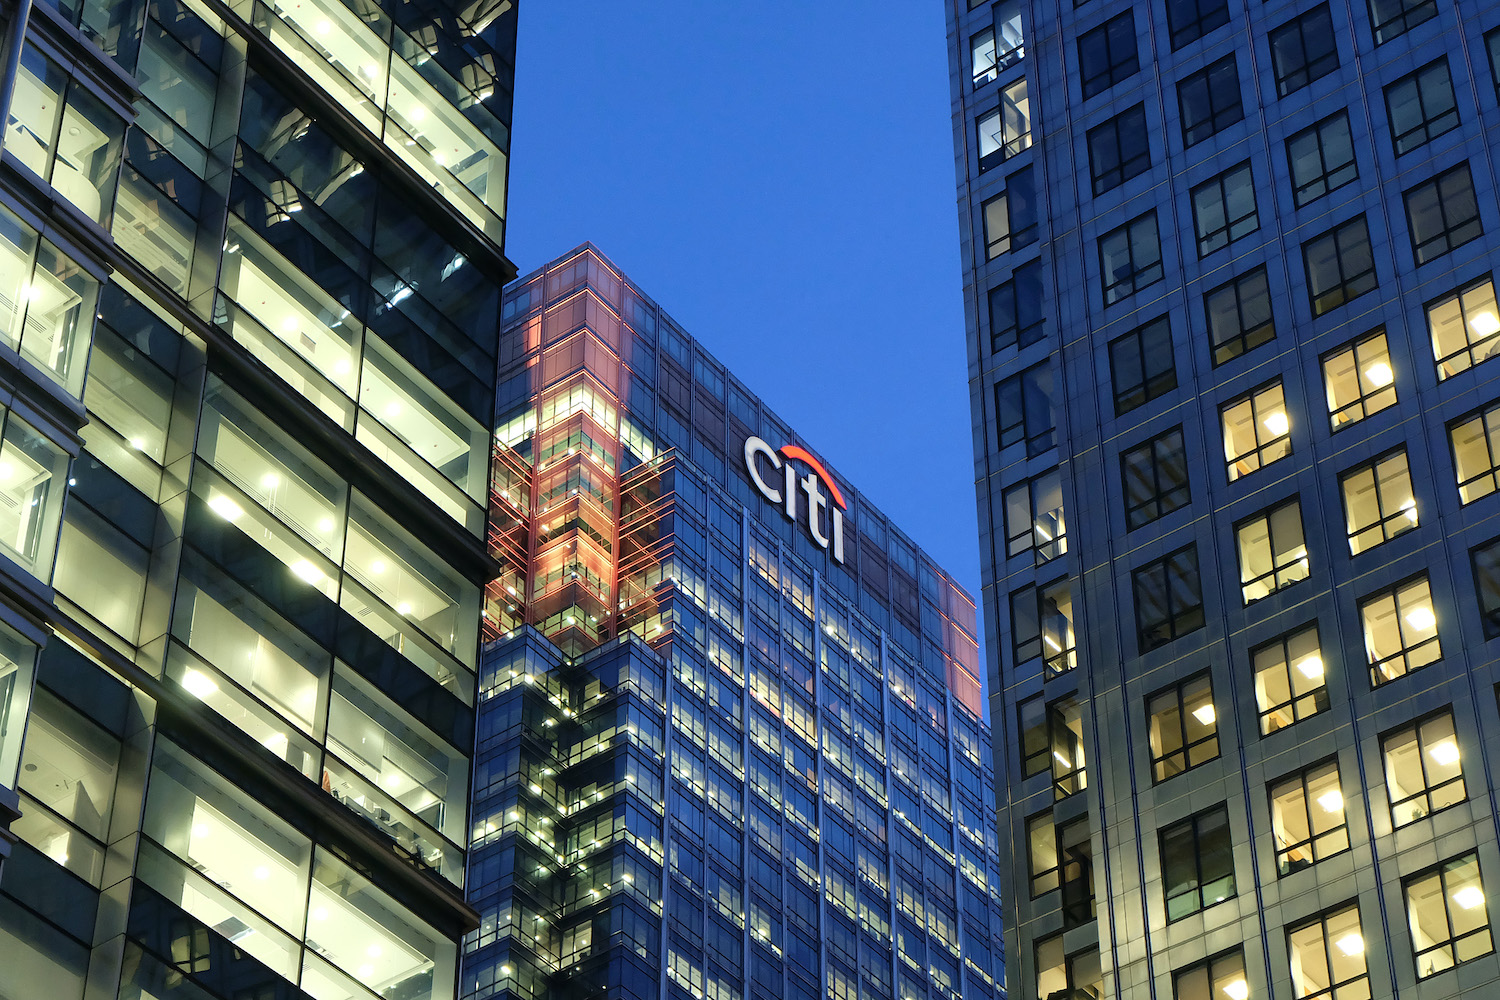 Citigroup Is Gearing Up to Trade CME Bitcoin Futures: Sources